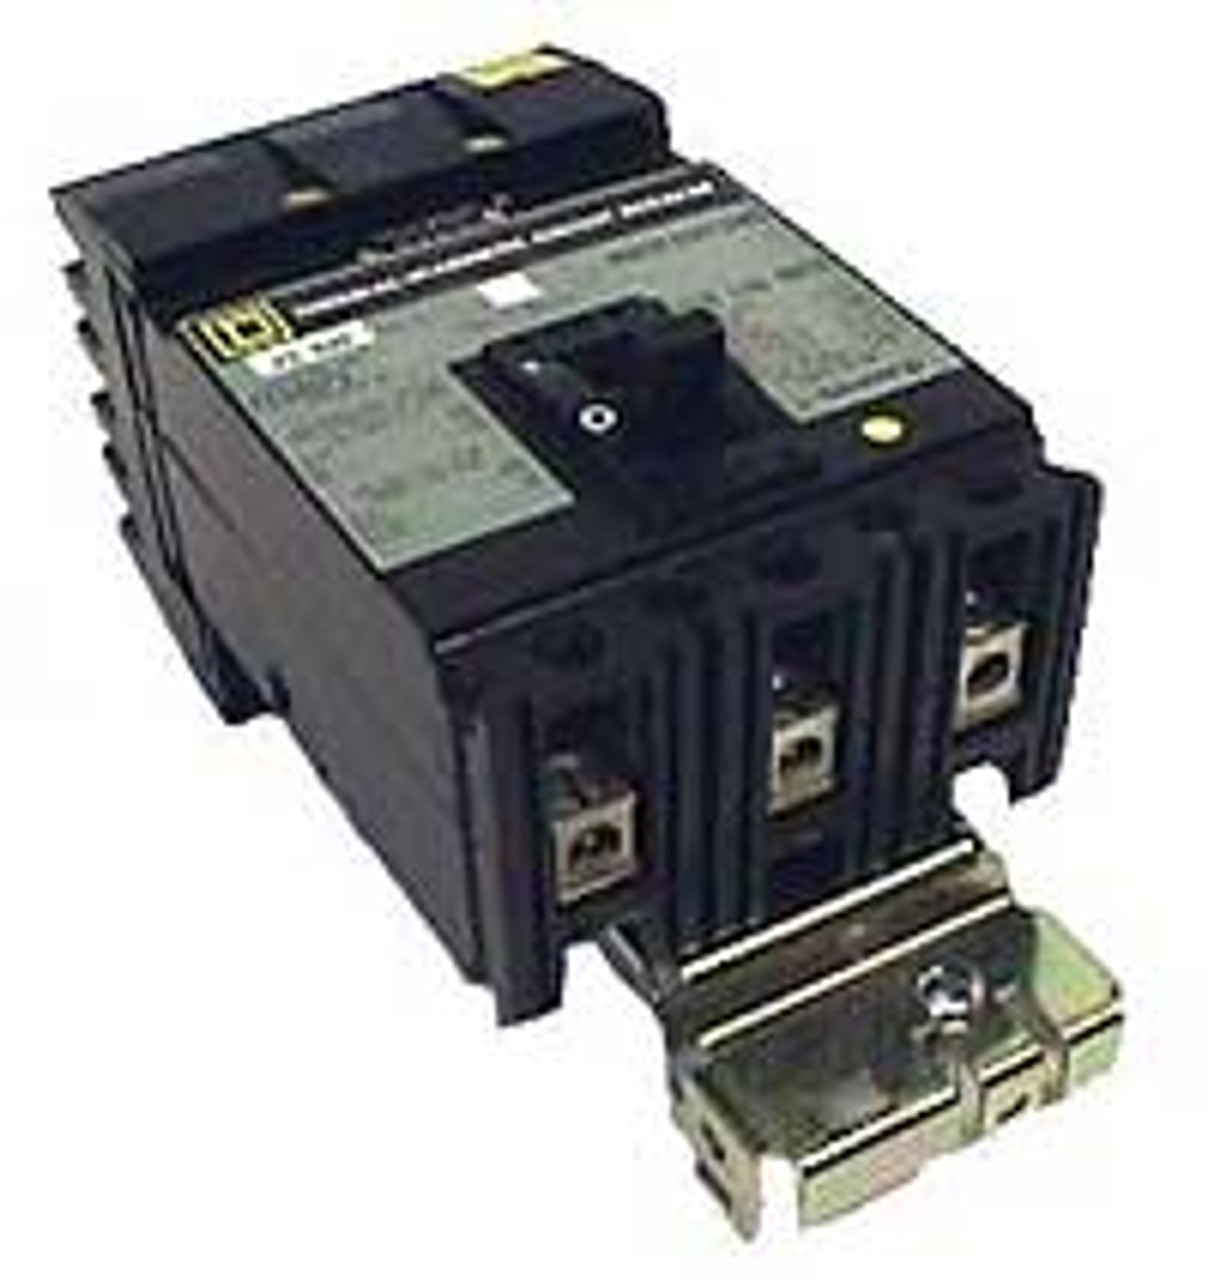 Square D FI36100 3 Pole 100 Amp 600VAC Circuit Breaker, New Style - New Pullout